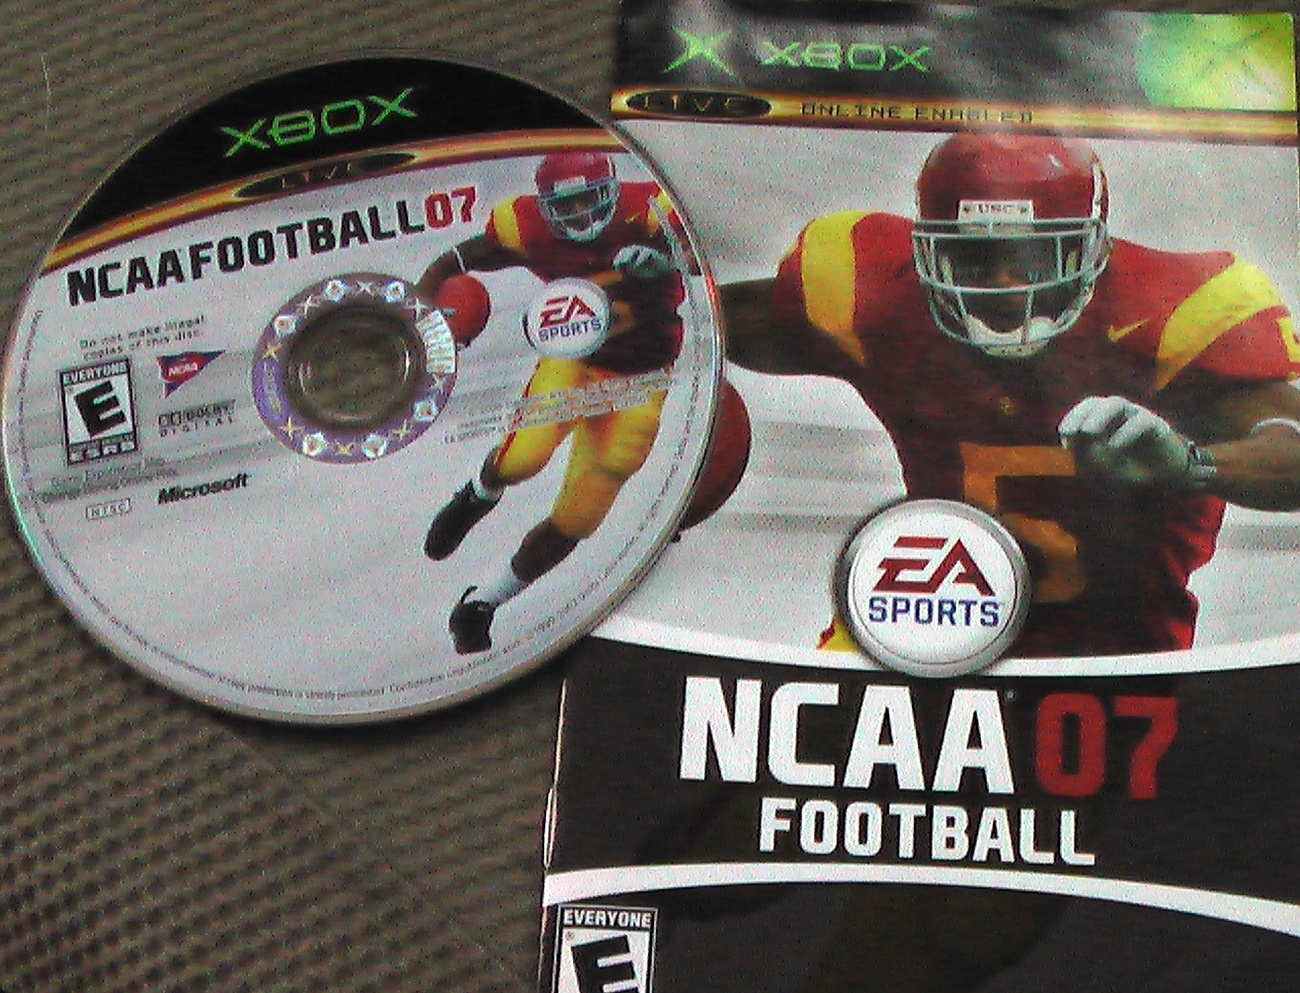 Xbox_ncaa_07_football